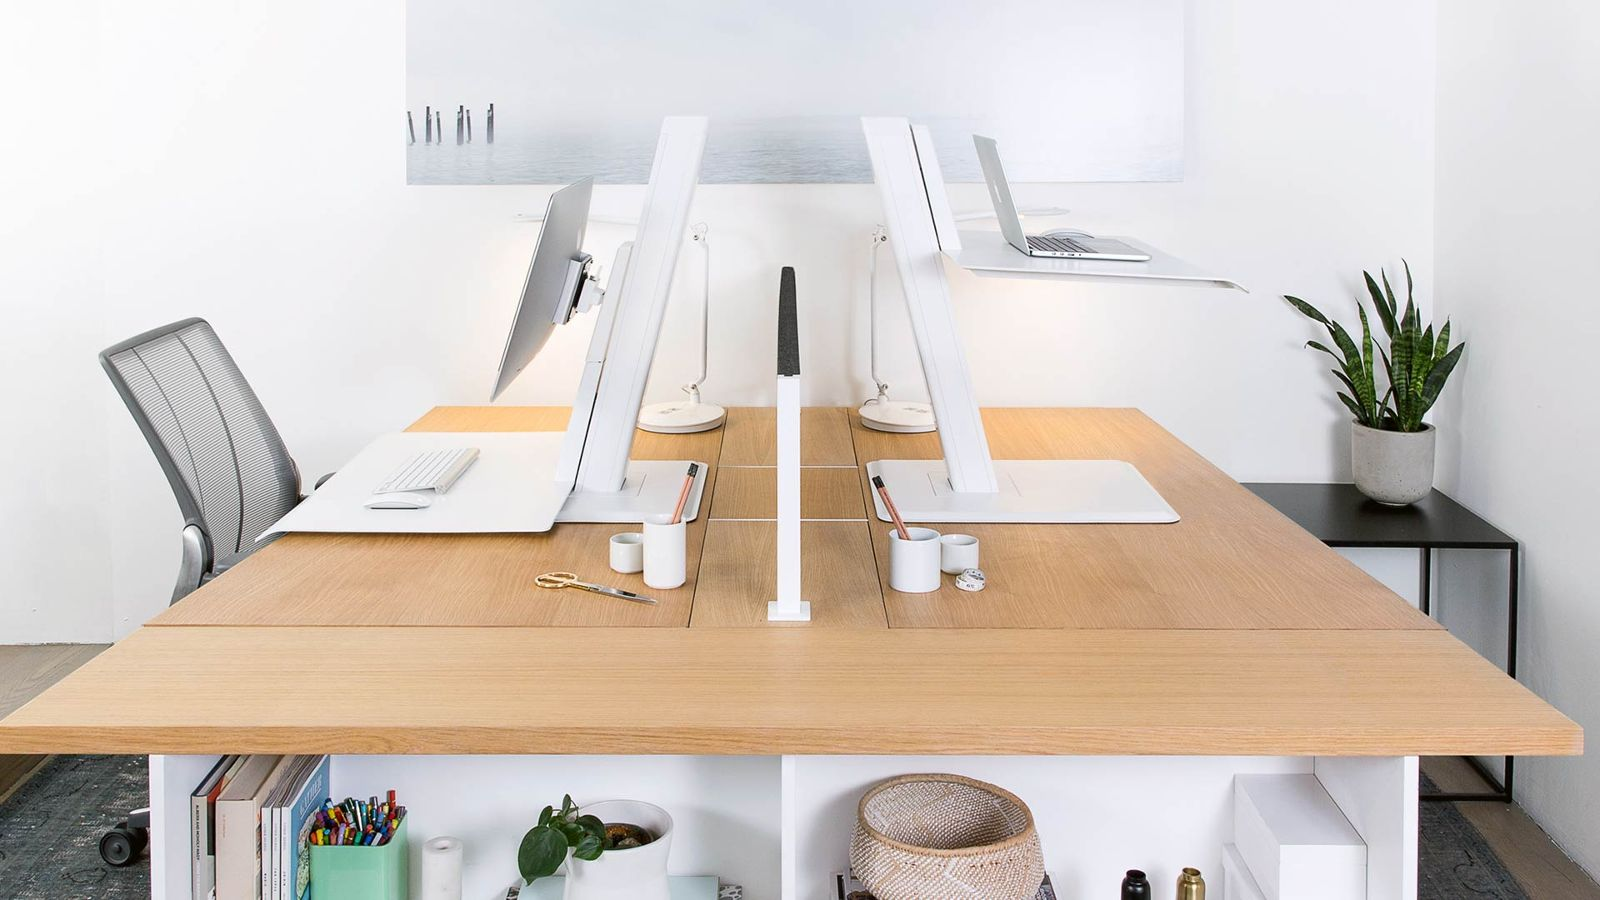 SIT TO STAND SOLUTIONS